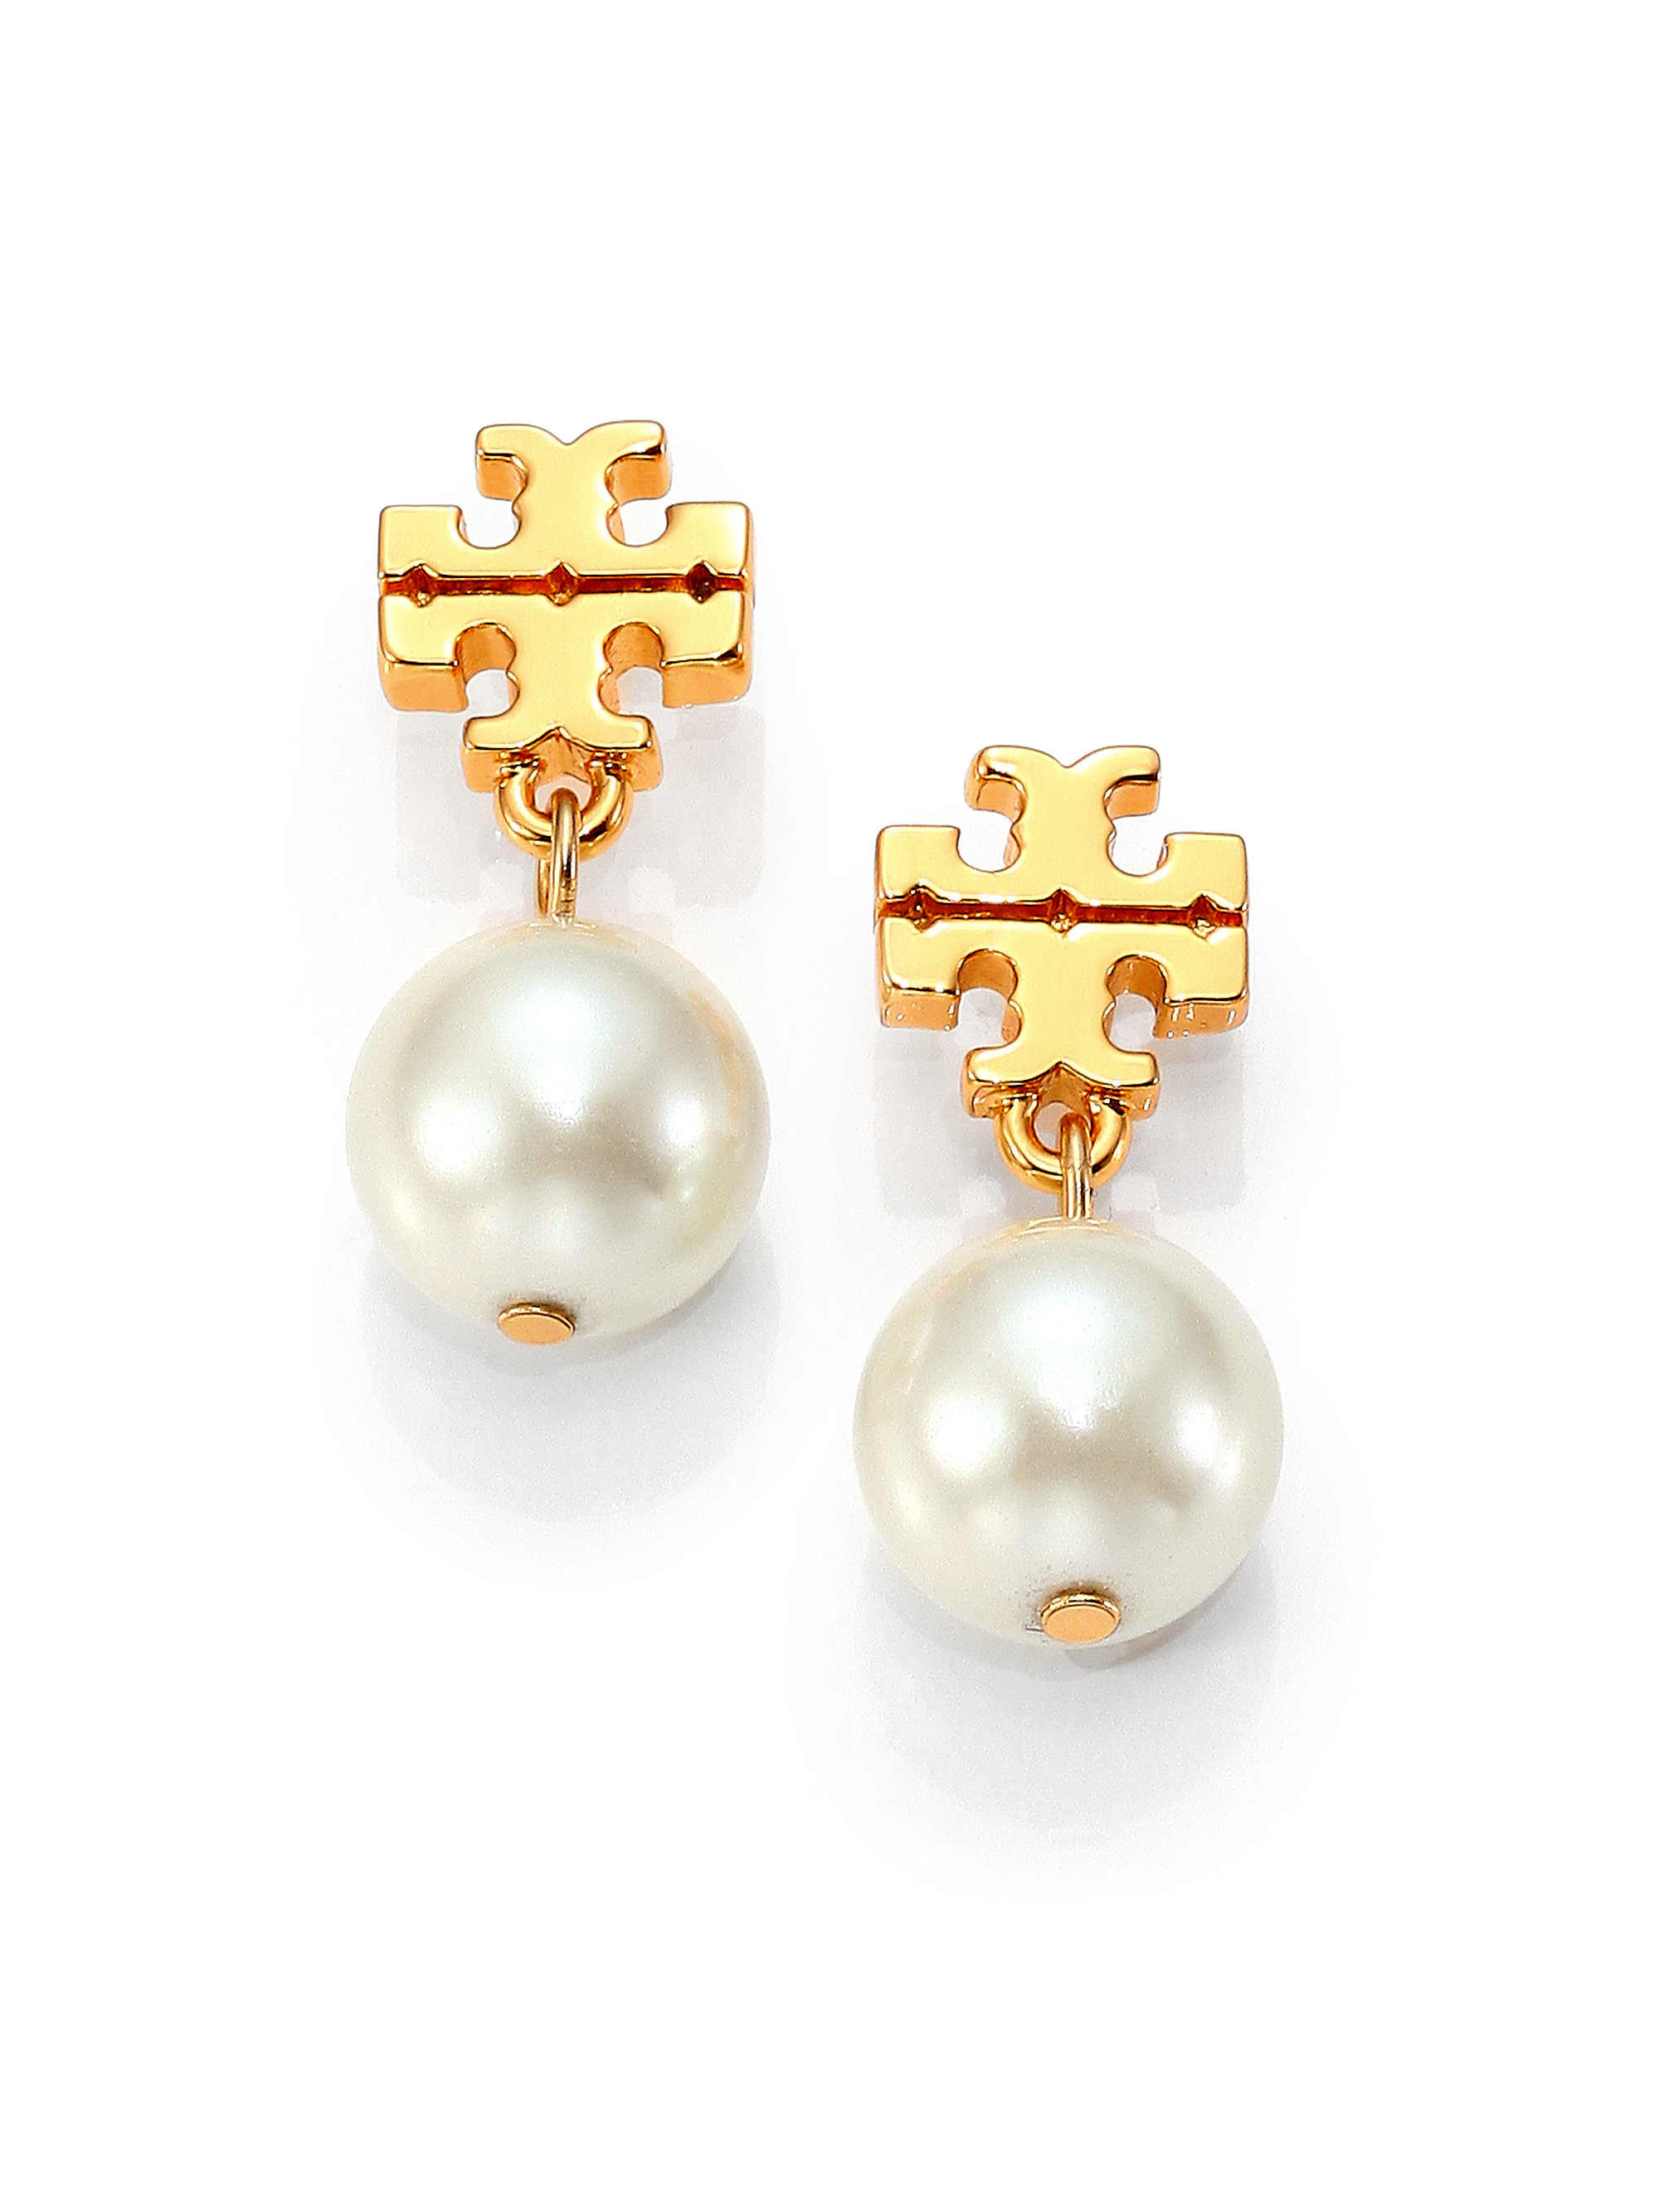 the earrings enlarged products jewelry pearl realreal faux chanel on stud studs clip